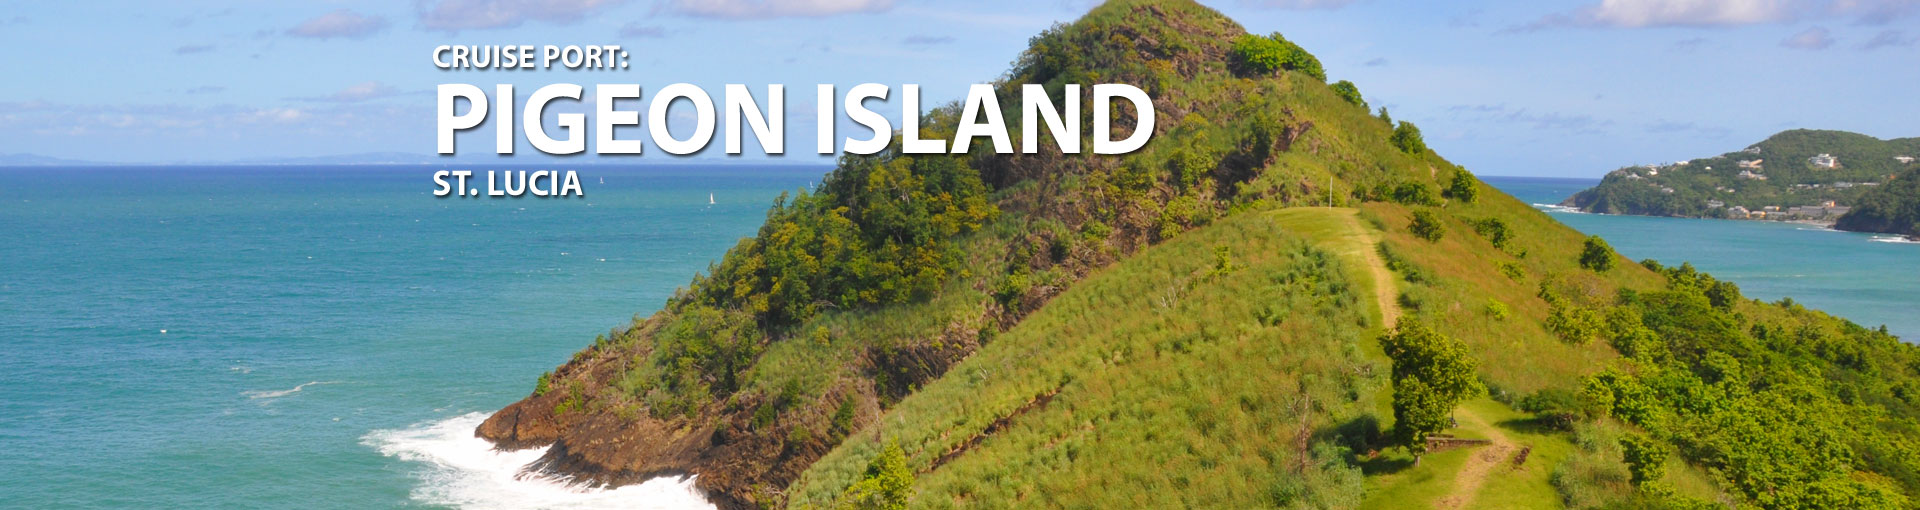 Cruises to Pigeon Island, St. Lucia